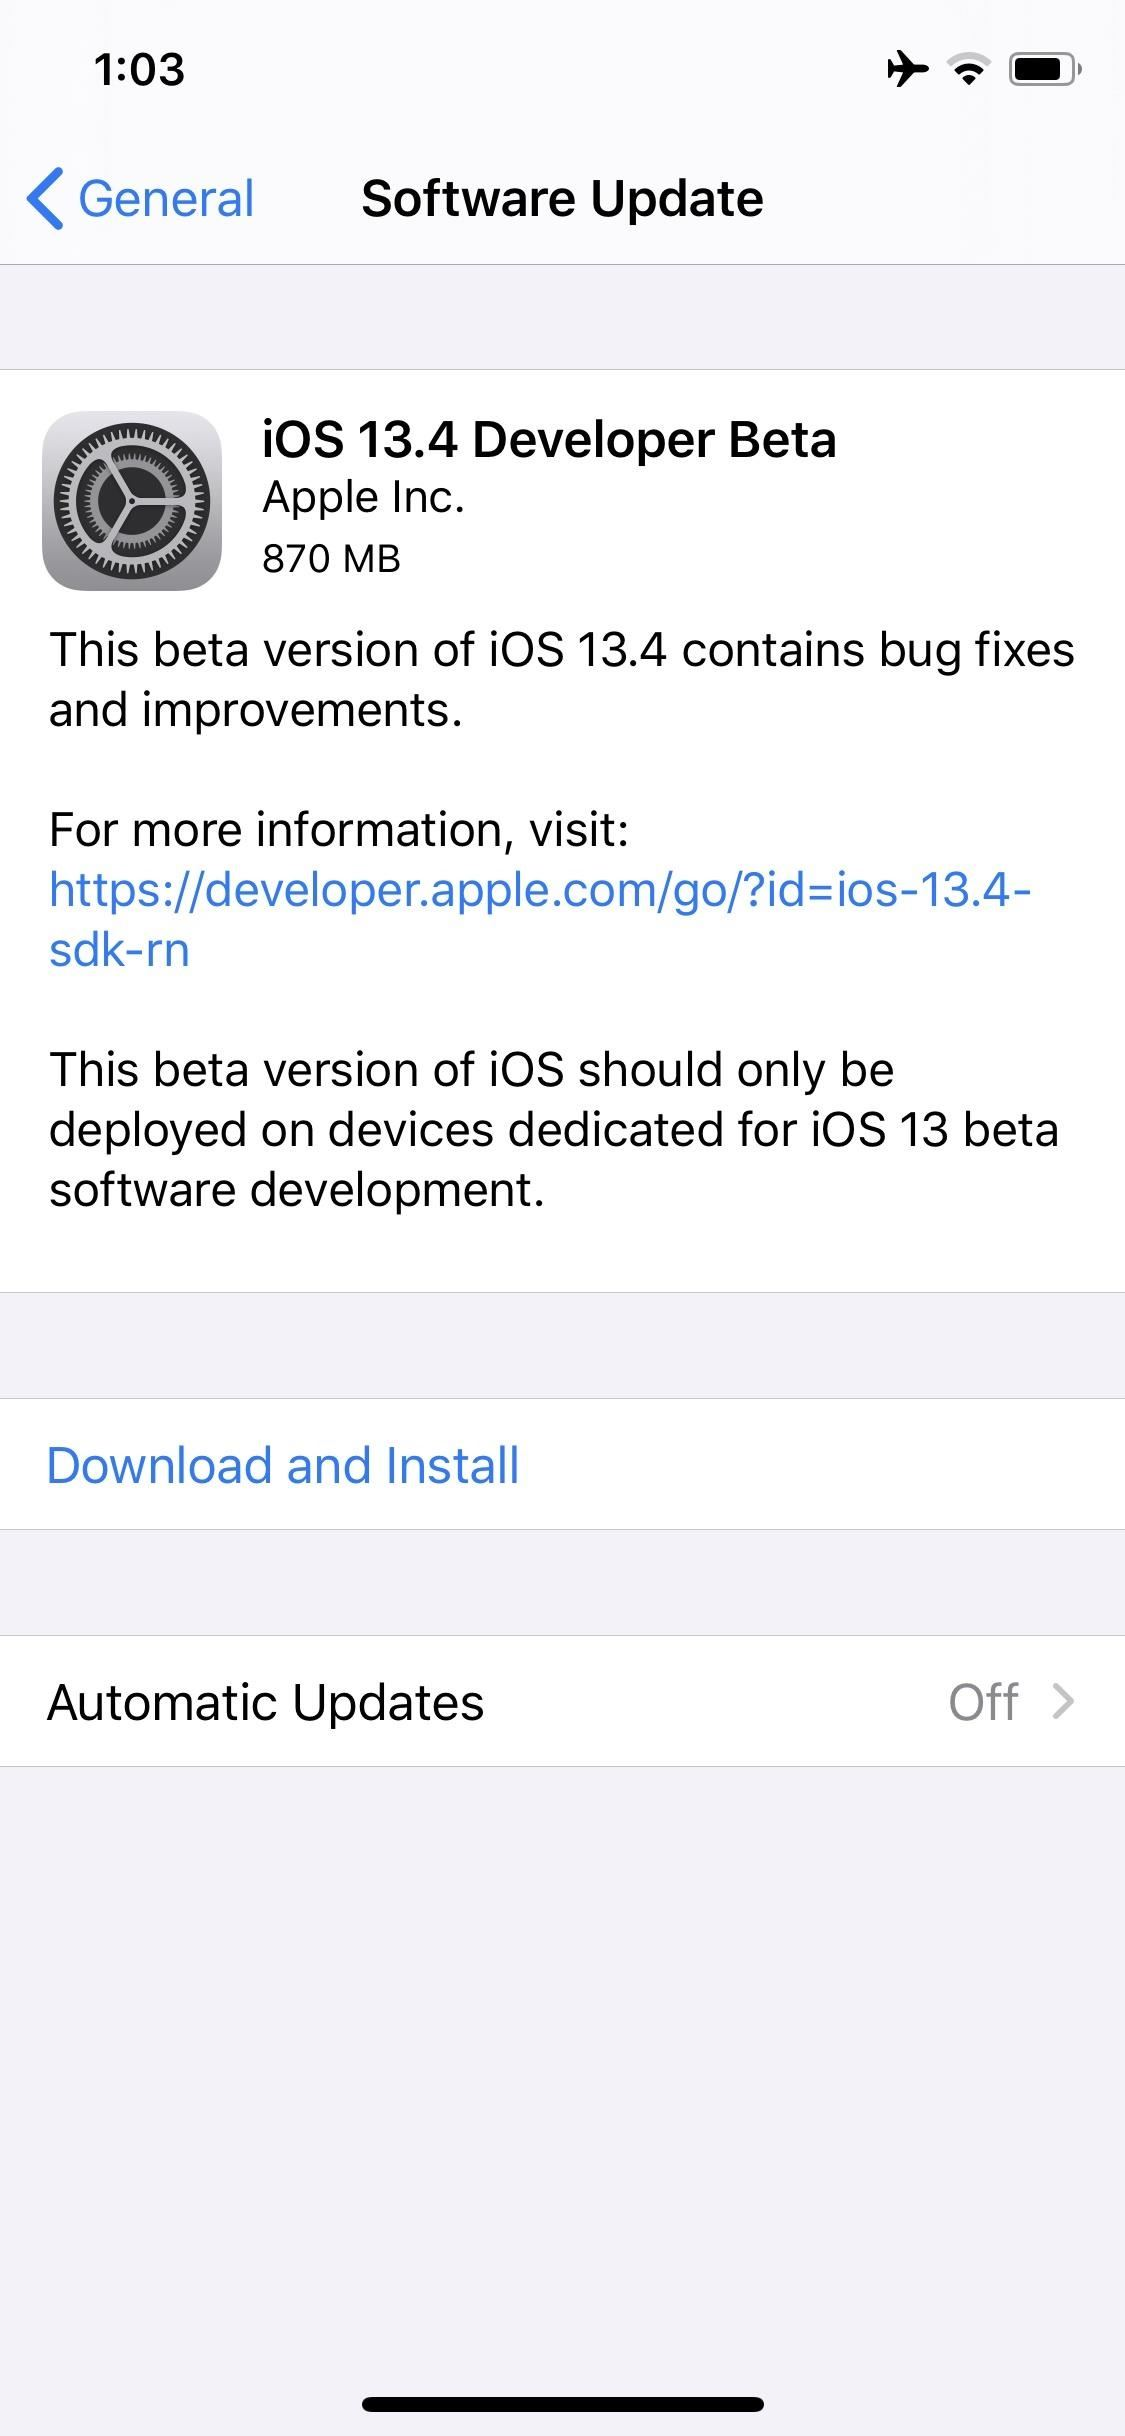 Apple Just Released iOS 13.4 Developer Beta 1 for iPhone